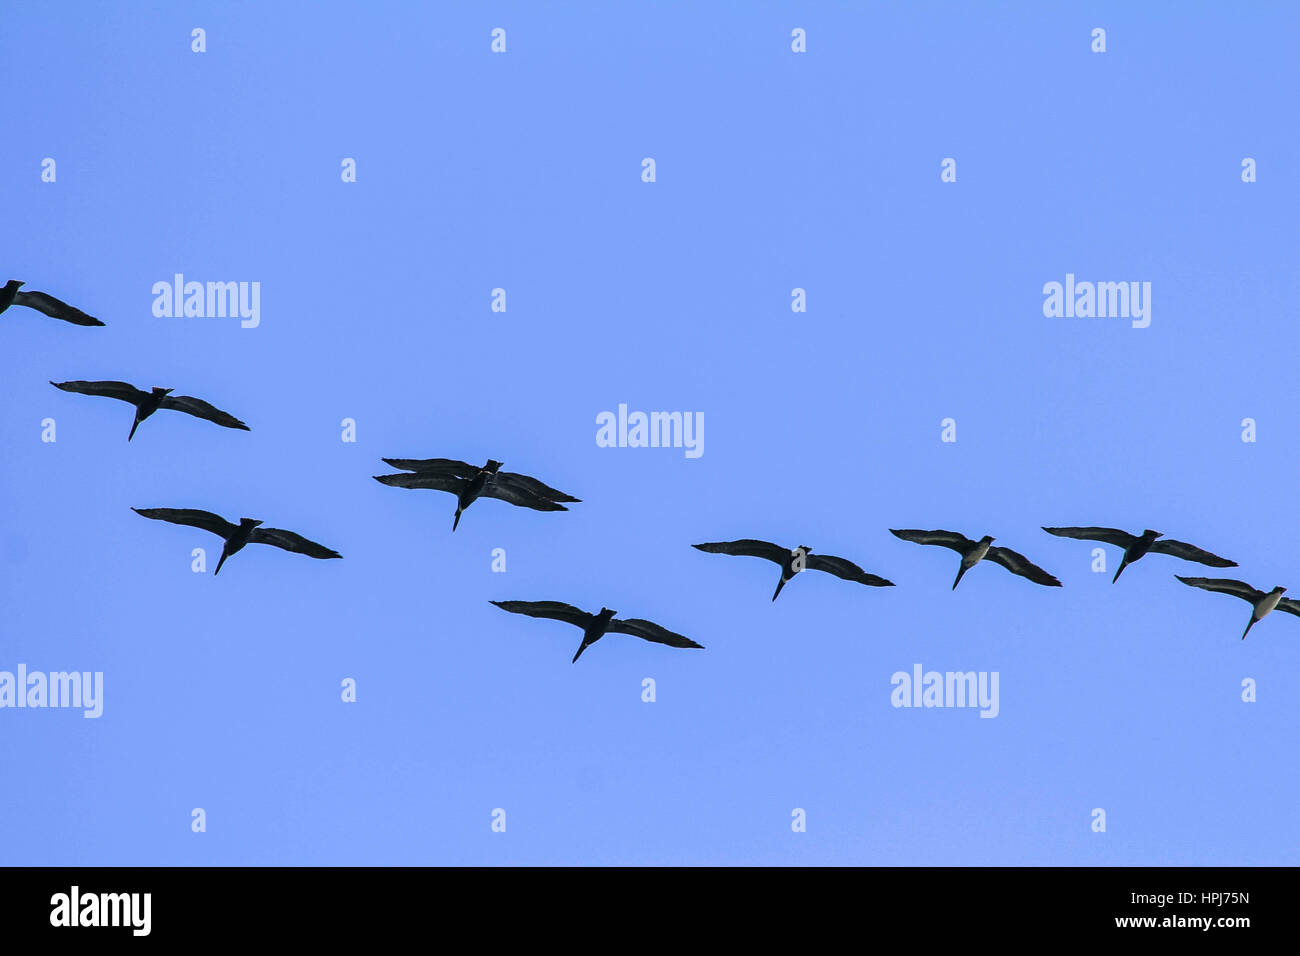 Formation of brown Pelicans flying against clear blue sky background - Stock Image